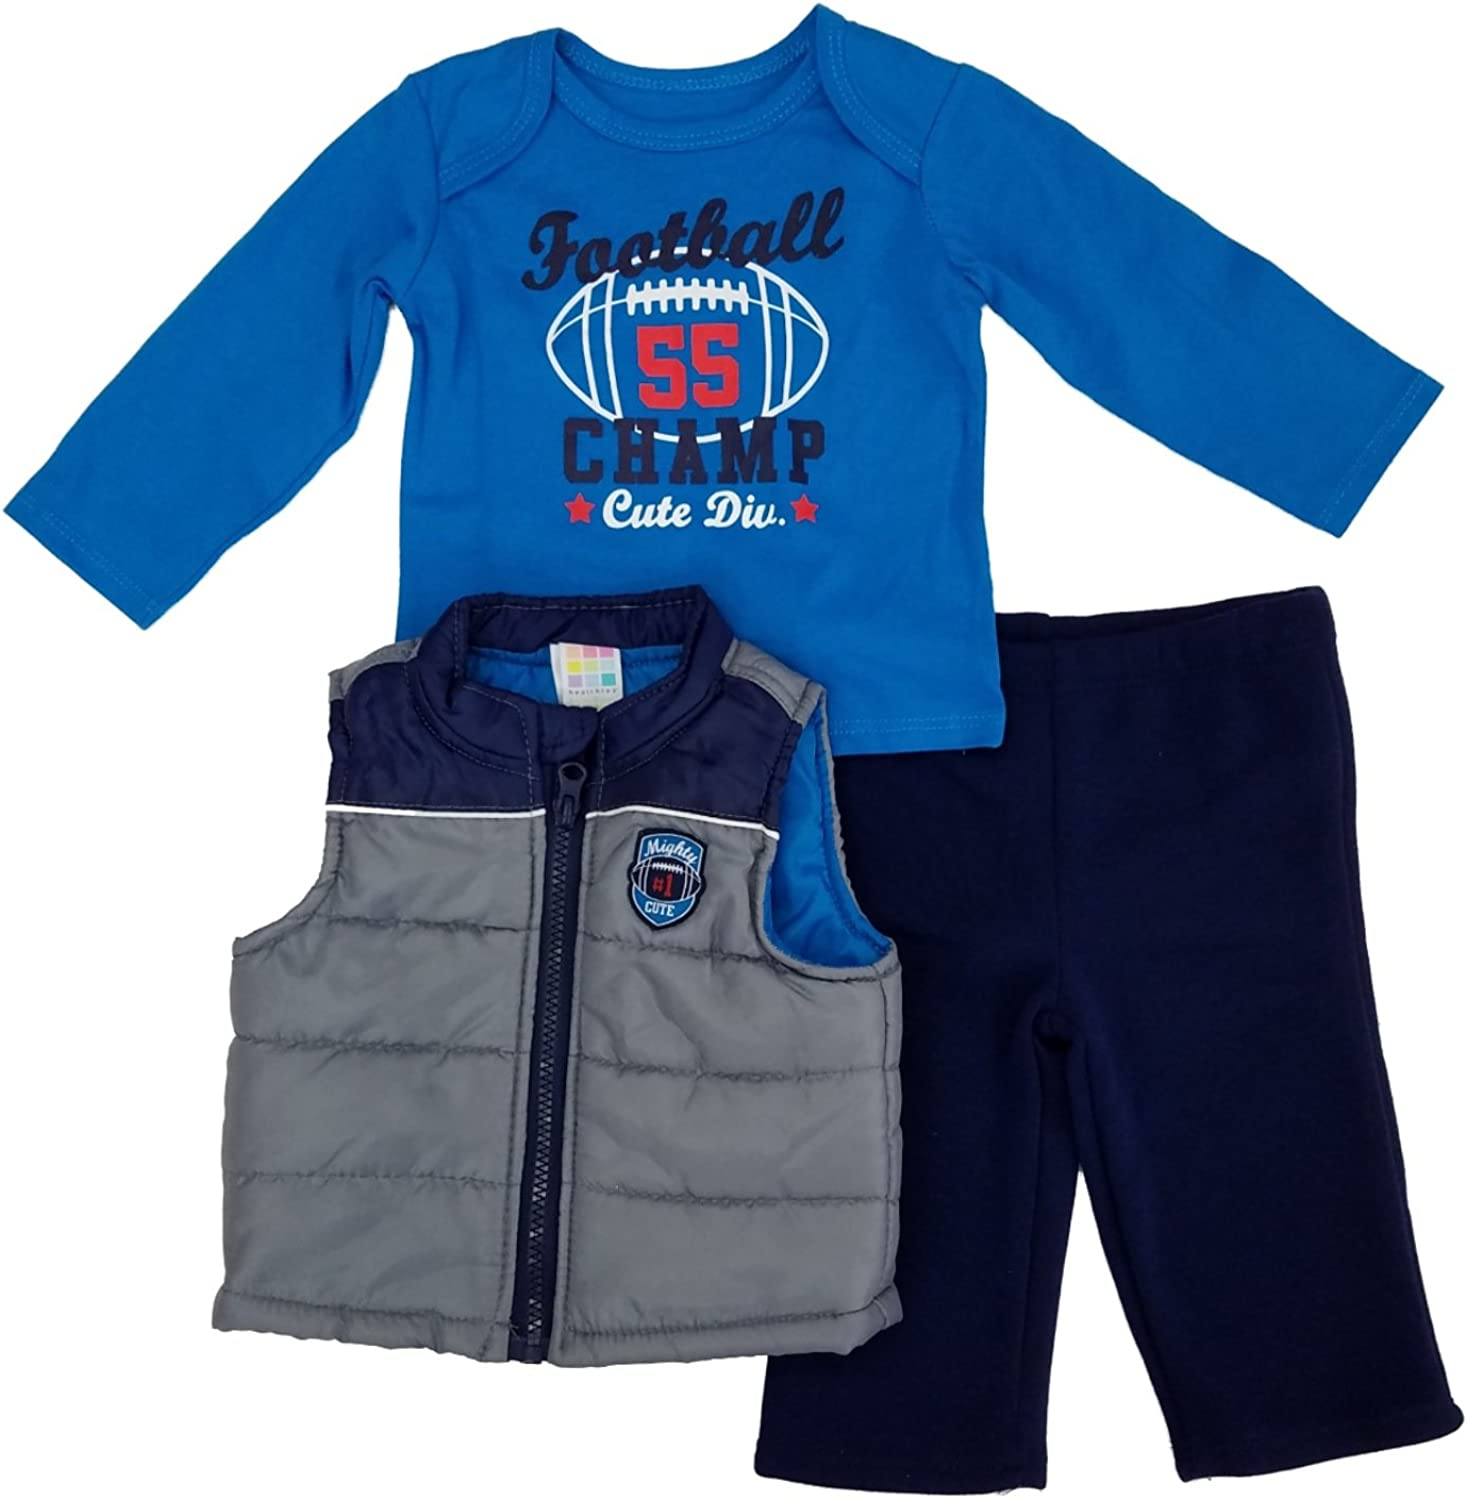 Hooded Puffer Vest Toddler Outfits Long Sleeve Tops and Tracksuit Baby Boy 3pcs Clothing Set